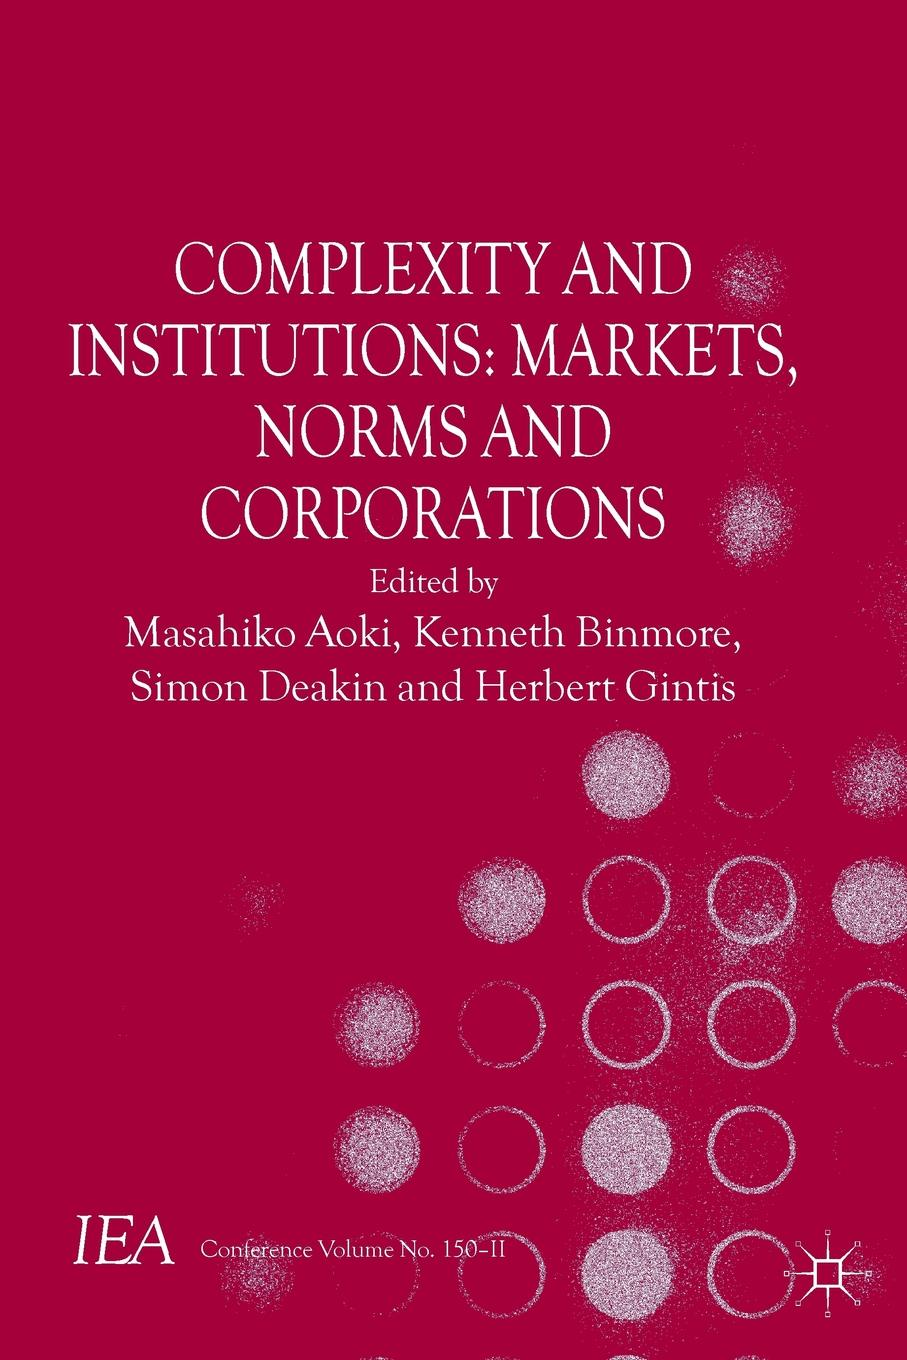 Complexity and Institutions. Markets, Norms and Corporations collected papers in theoretical economics development markets and institutions